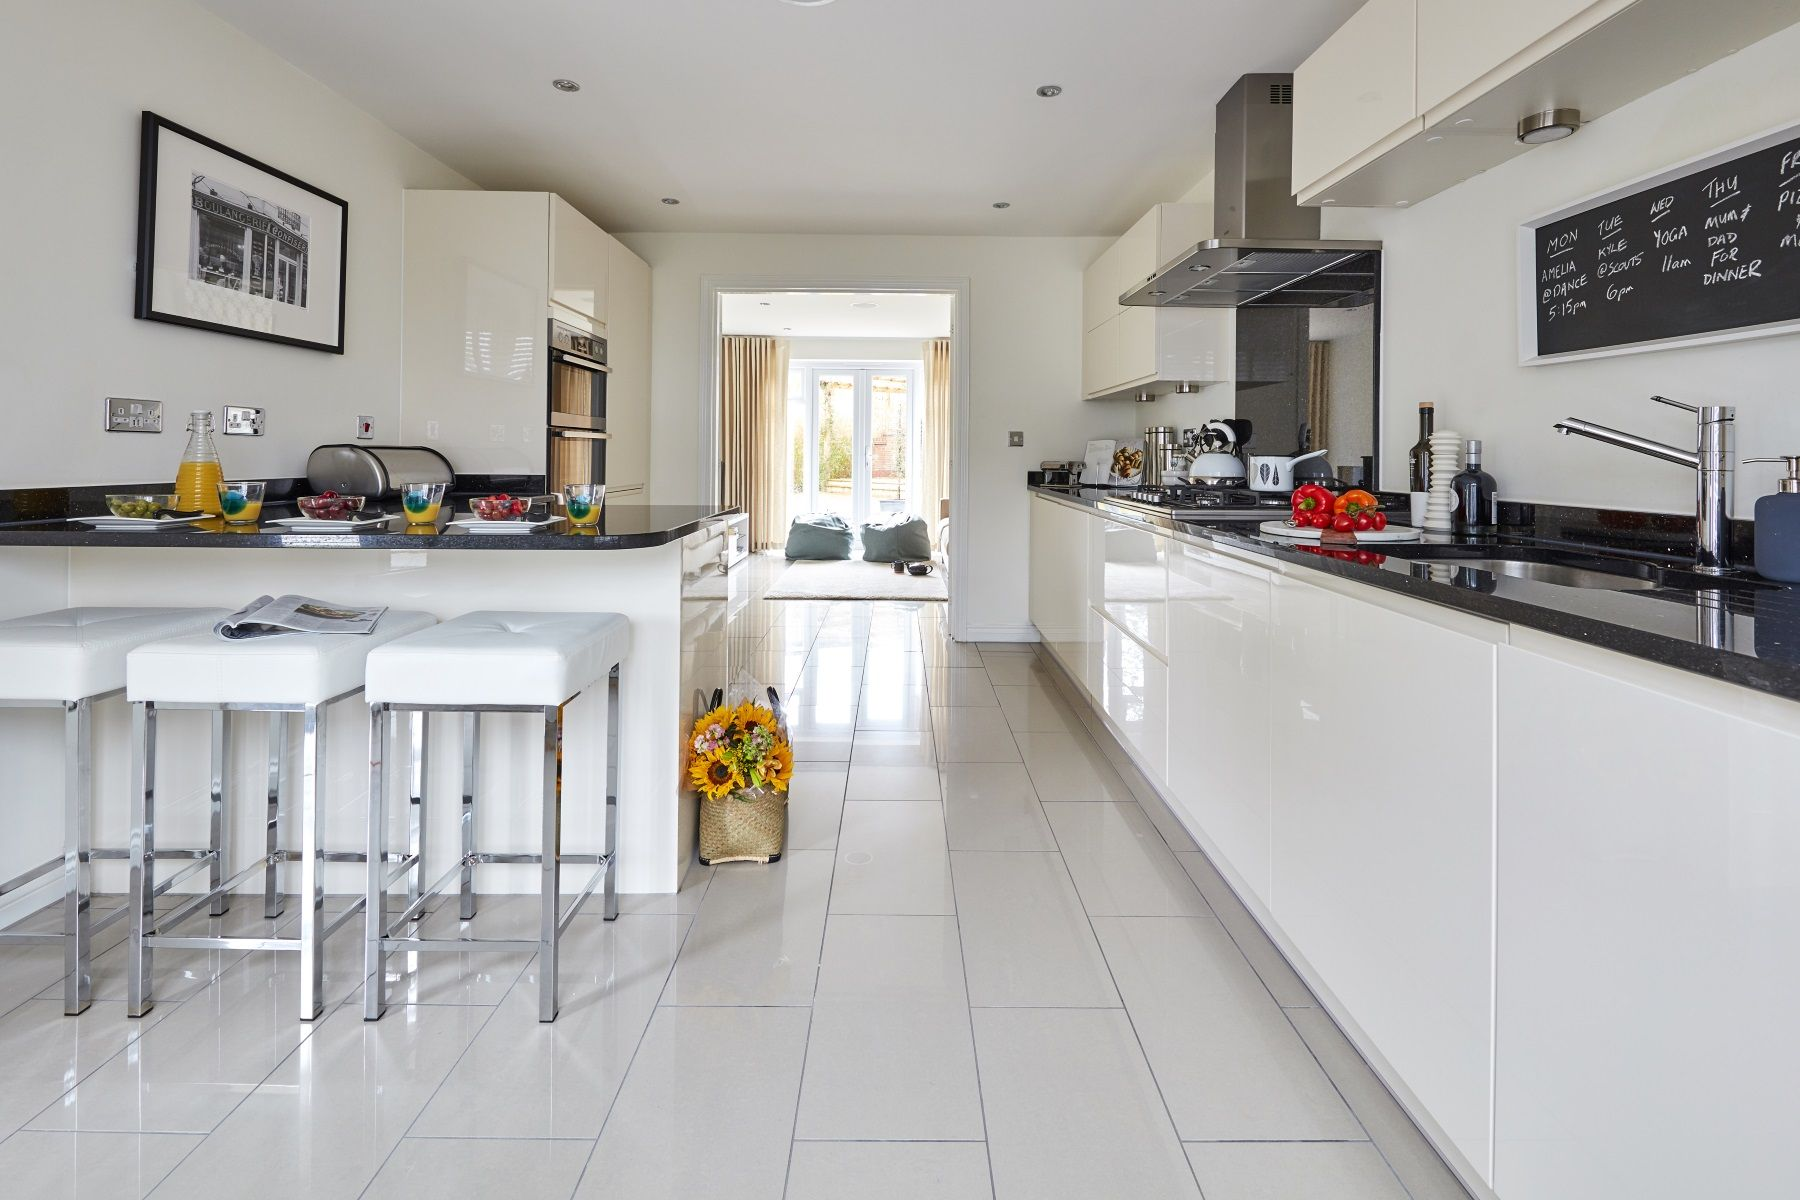 TW Exeter - Plumb Park - Dorchester example kitchen